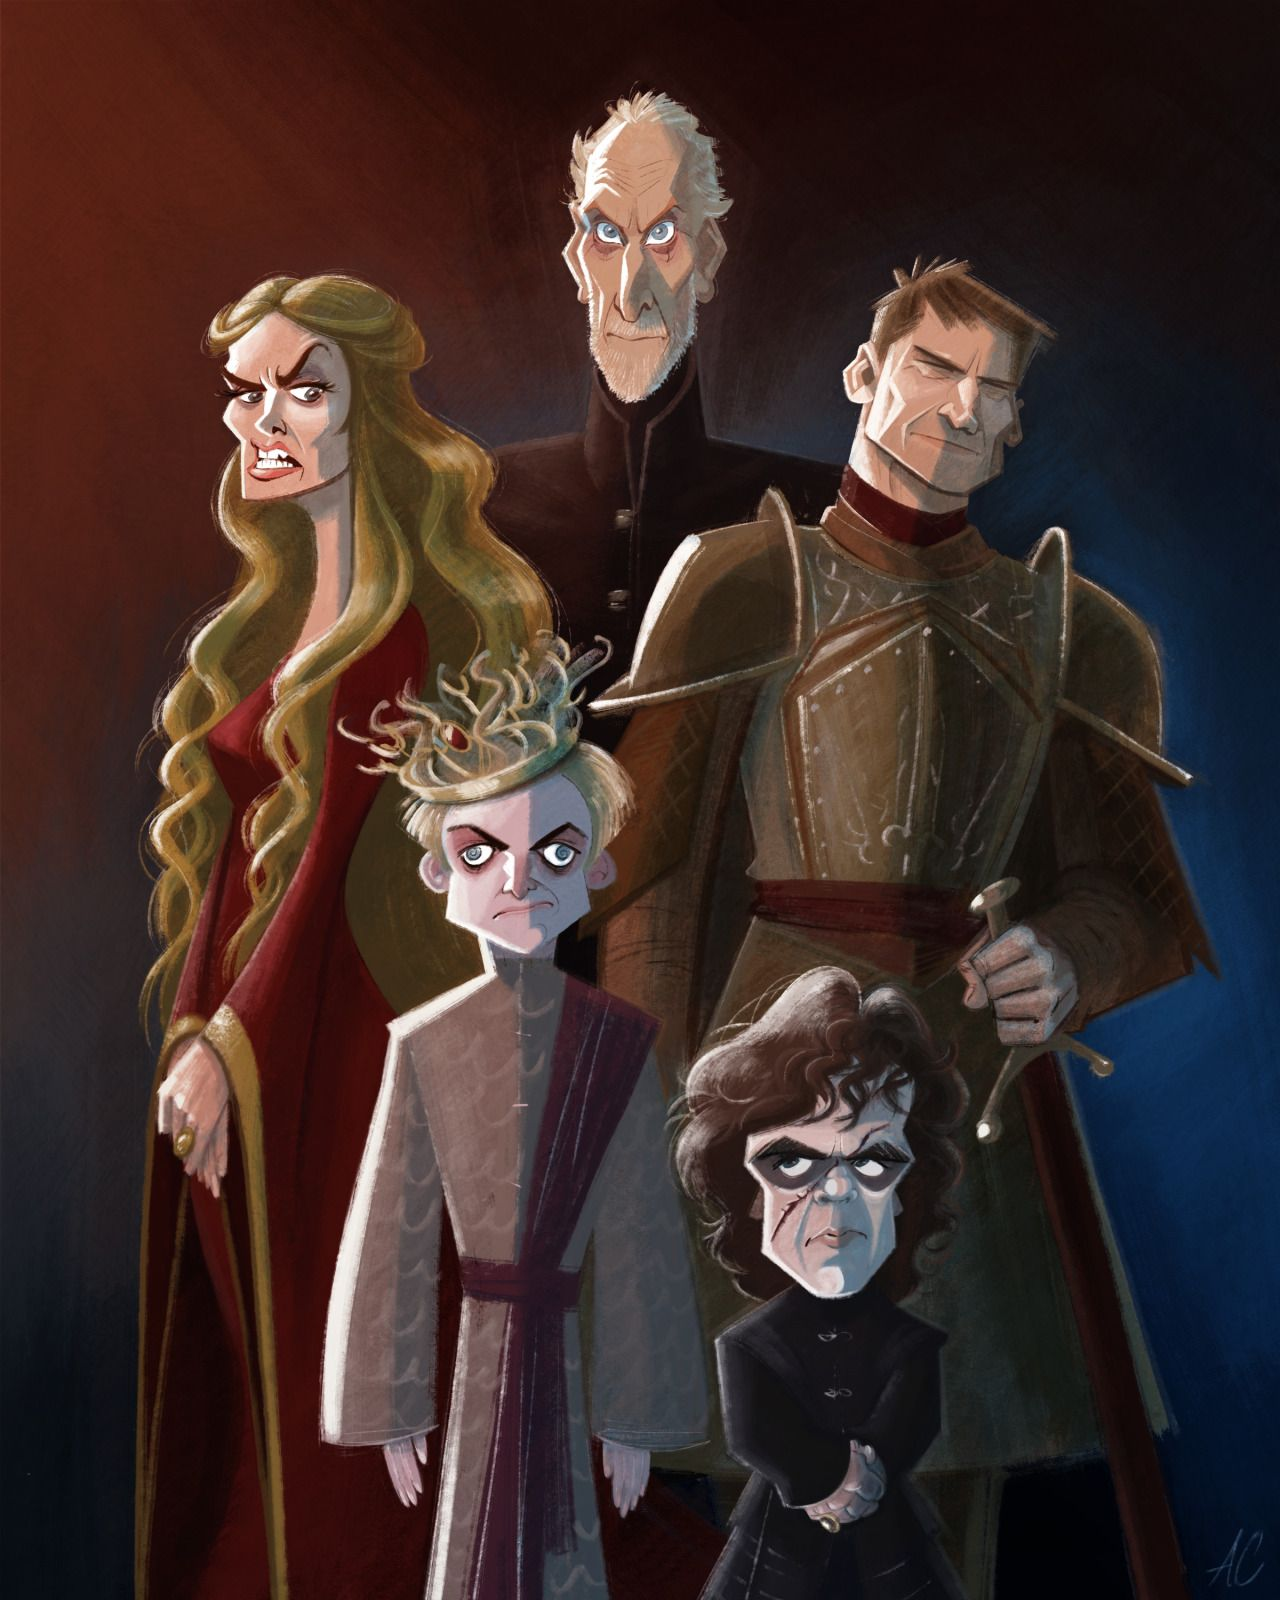 Artofandrewchesworth Family Portrait Of The Loving Loathing Lannisters The Lannisters C Game Of Thrones Fans Game Of Thrones Art Game Of Thrones Poster